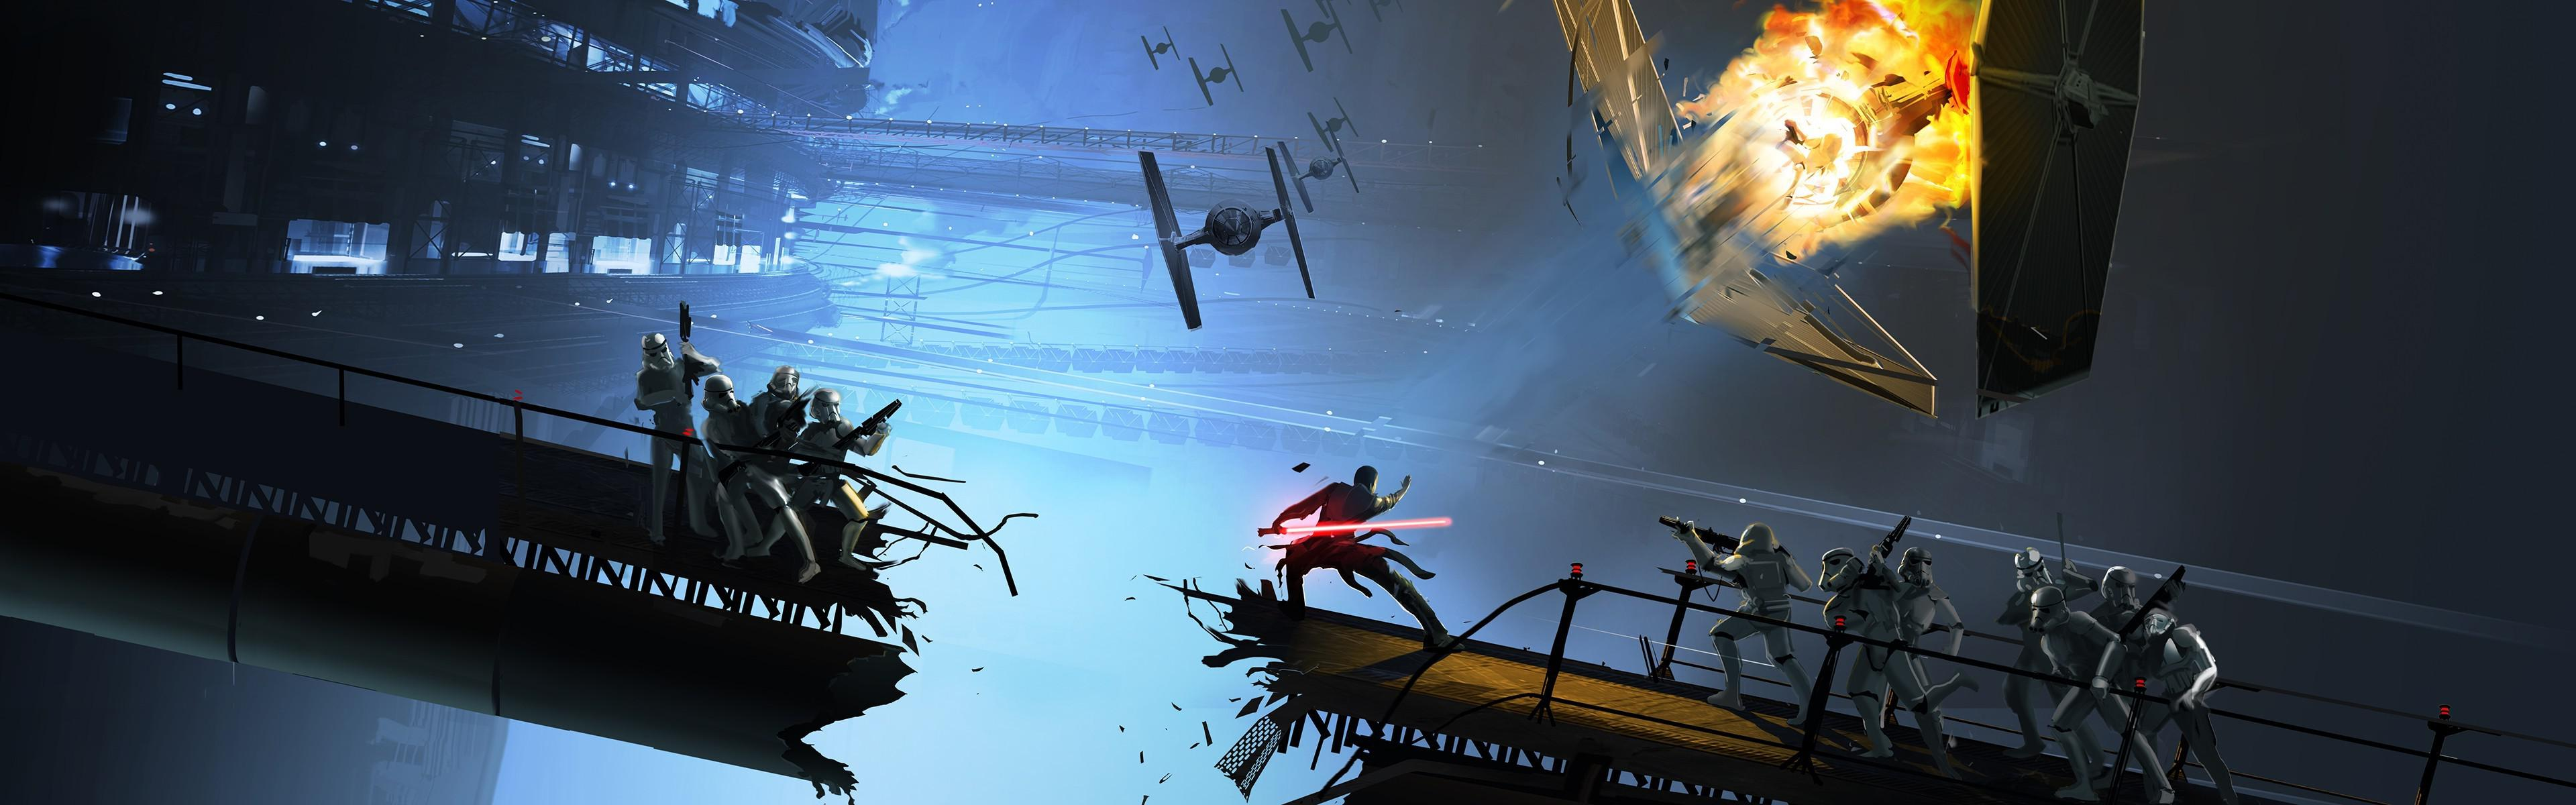 dual monitor wallpaper,action adventure game,games,pc game,space,graphic design